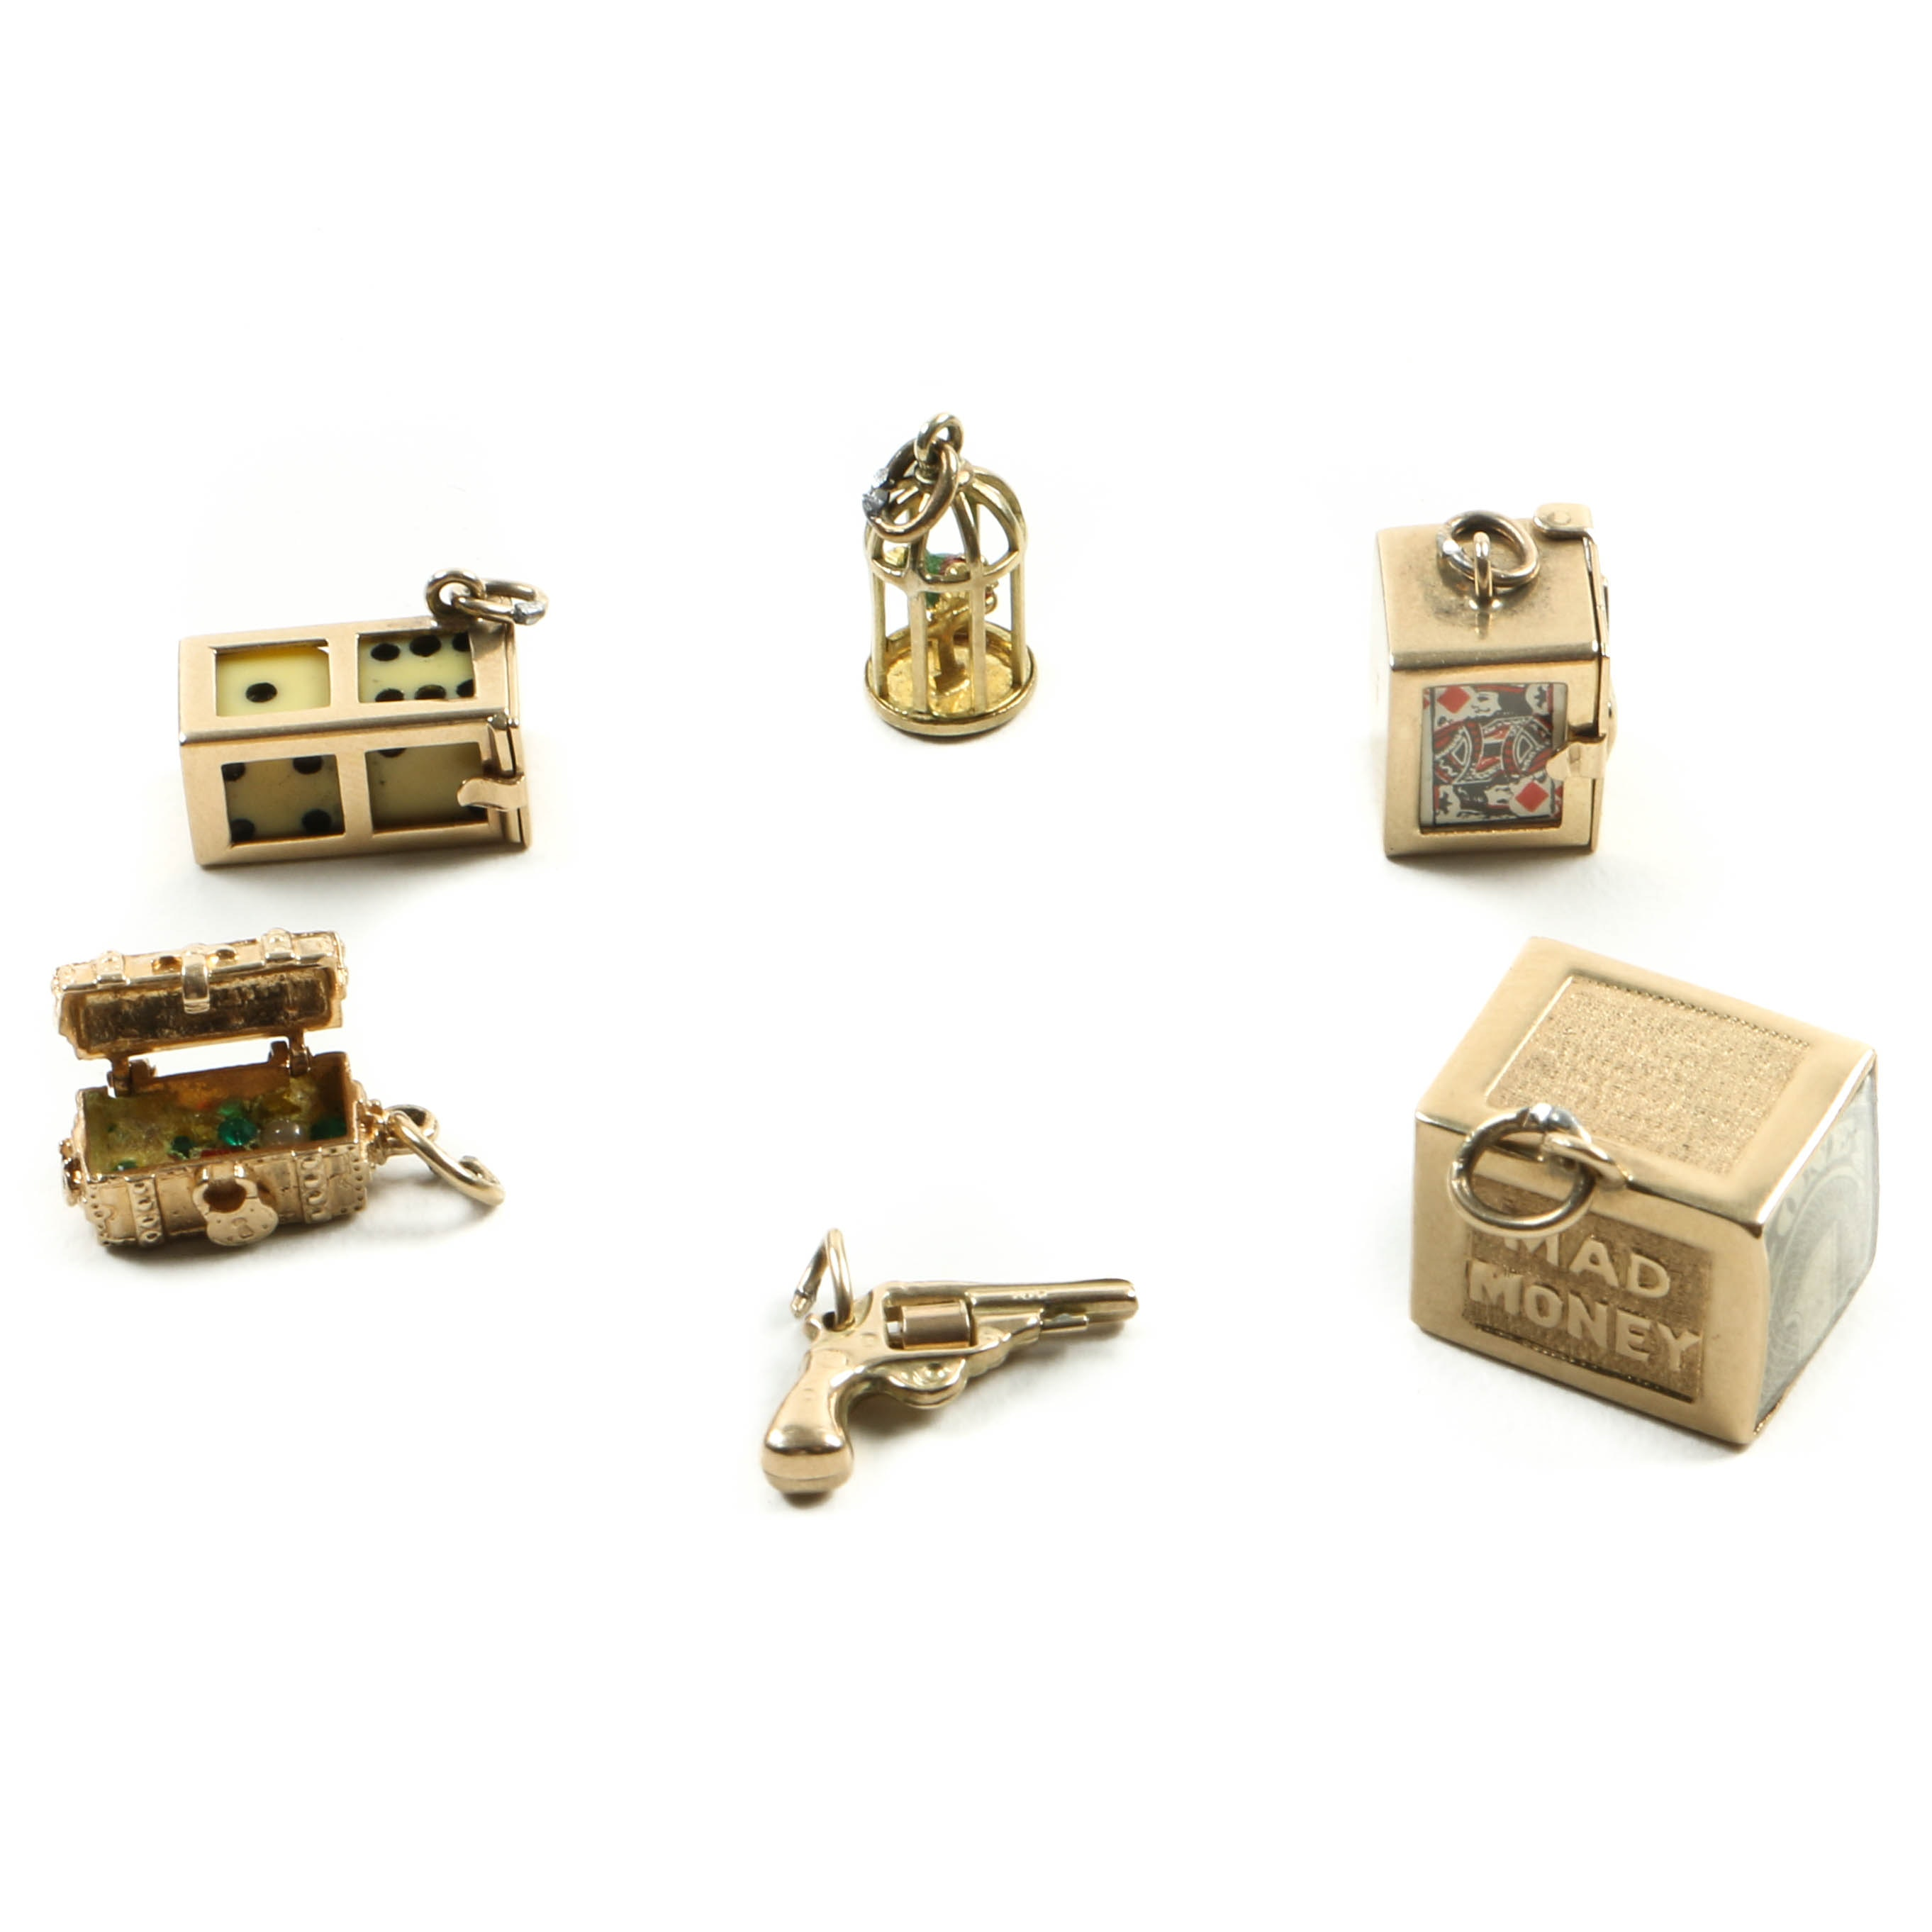 10K and 14K Yellow Gold Charms with Articulating Parts